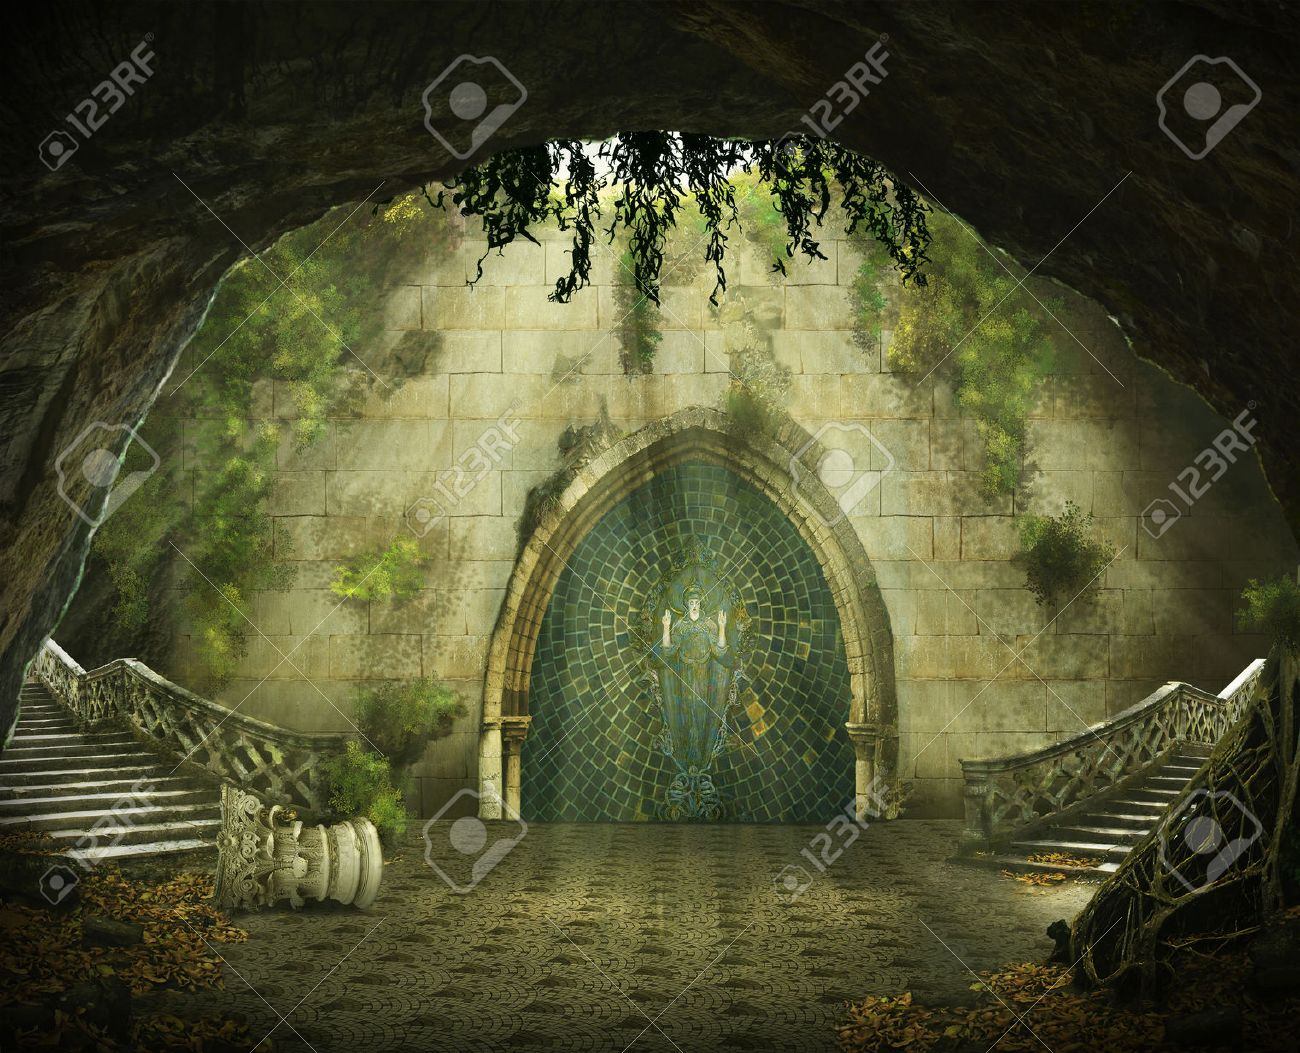 fantasy cave with a ruined castle inside, marble staircase and a painting - 40618973